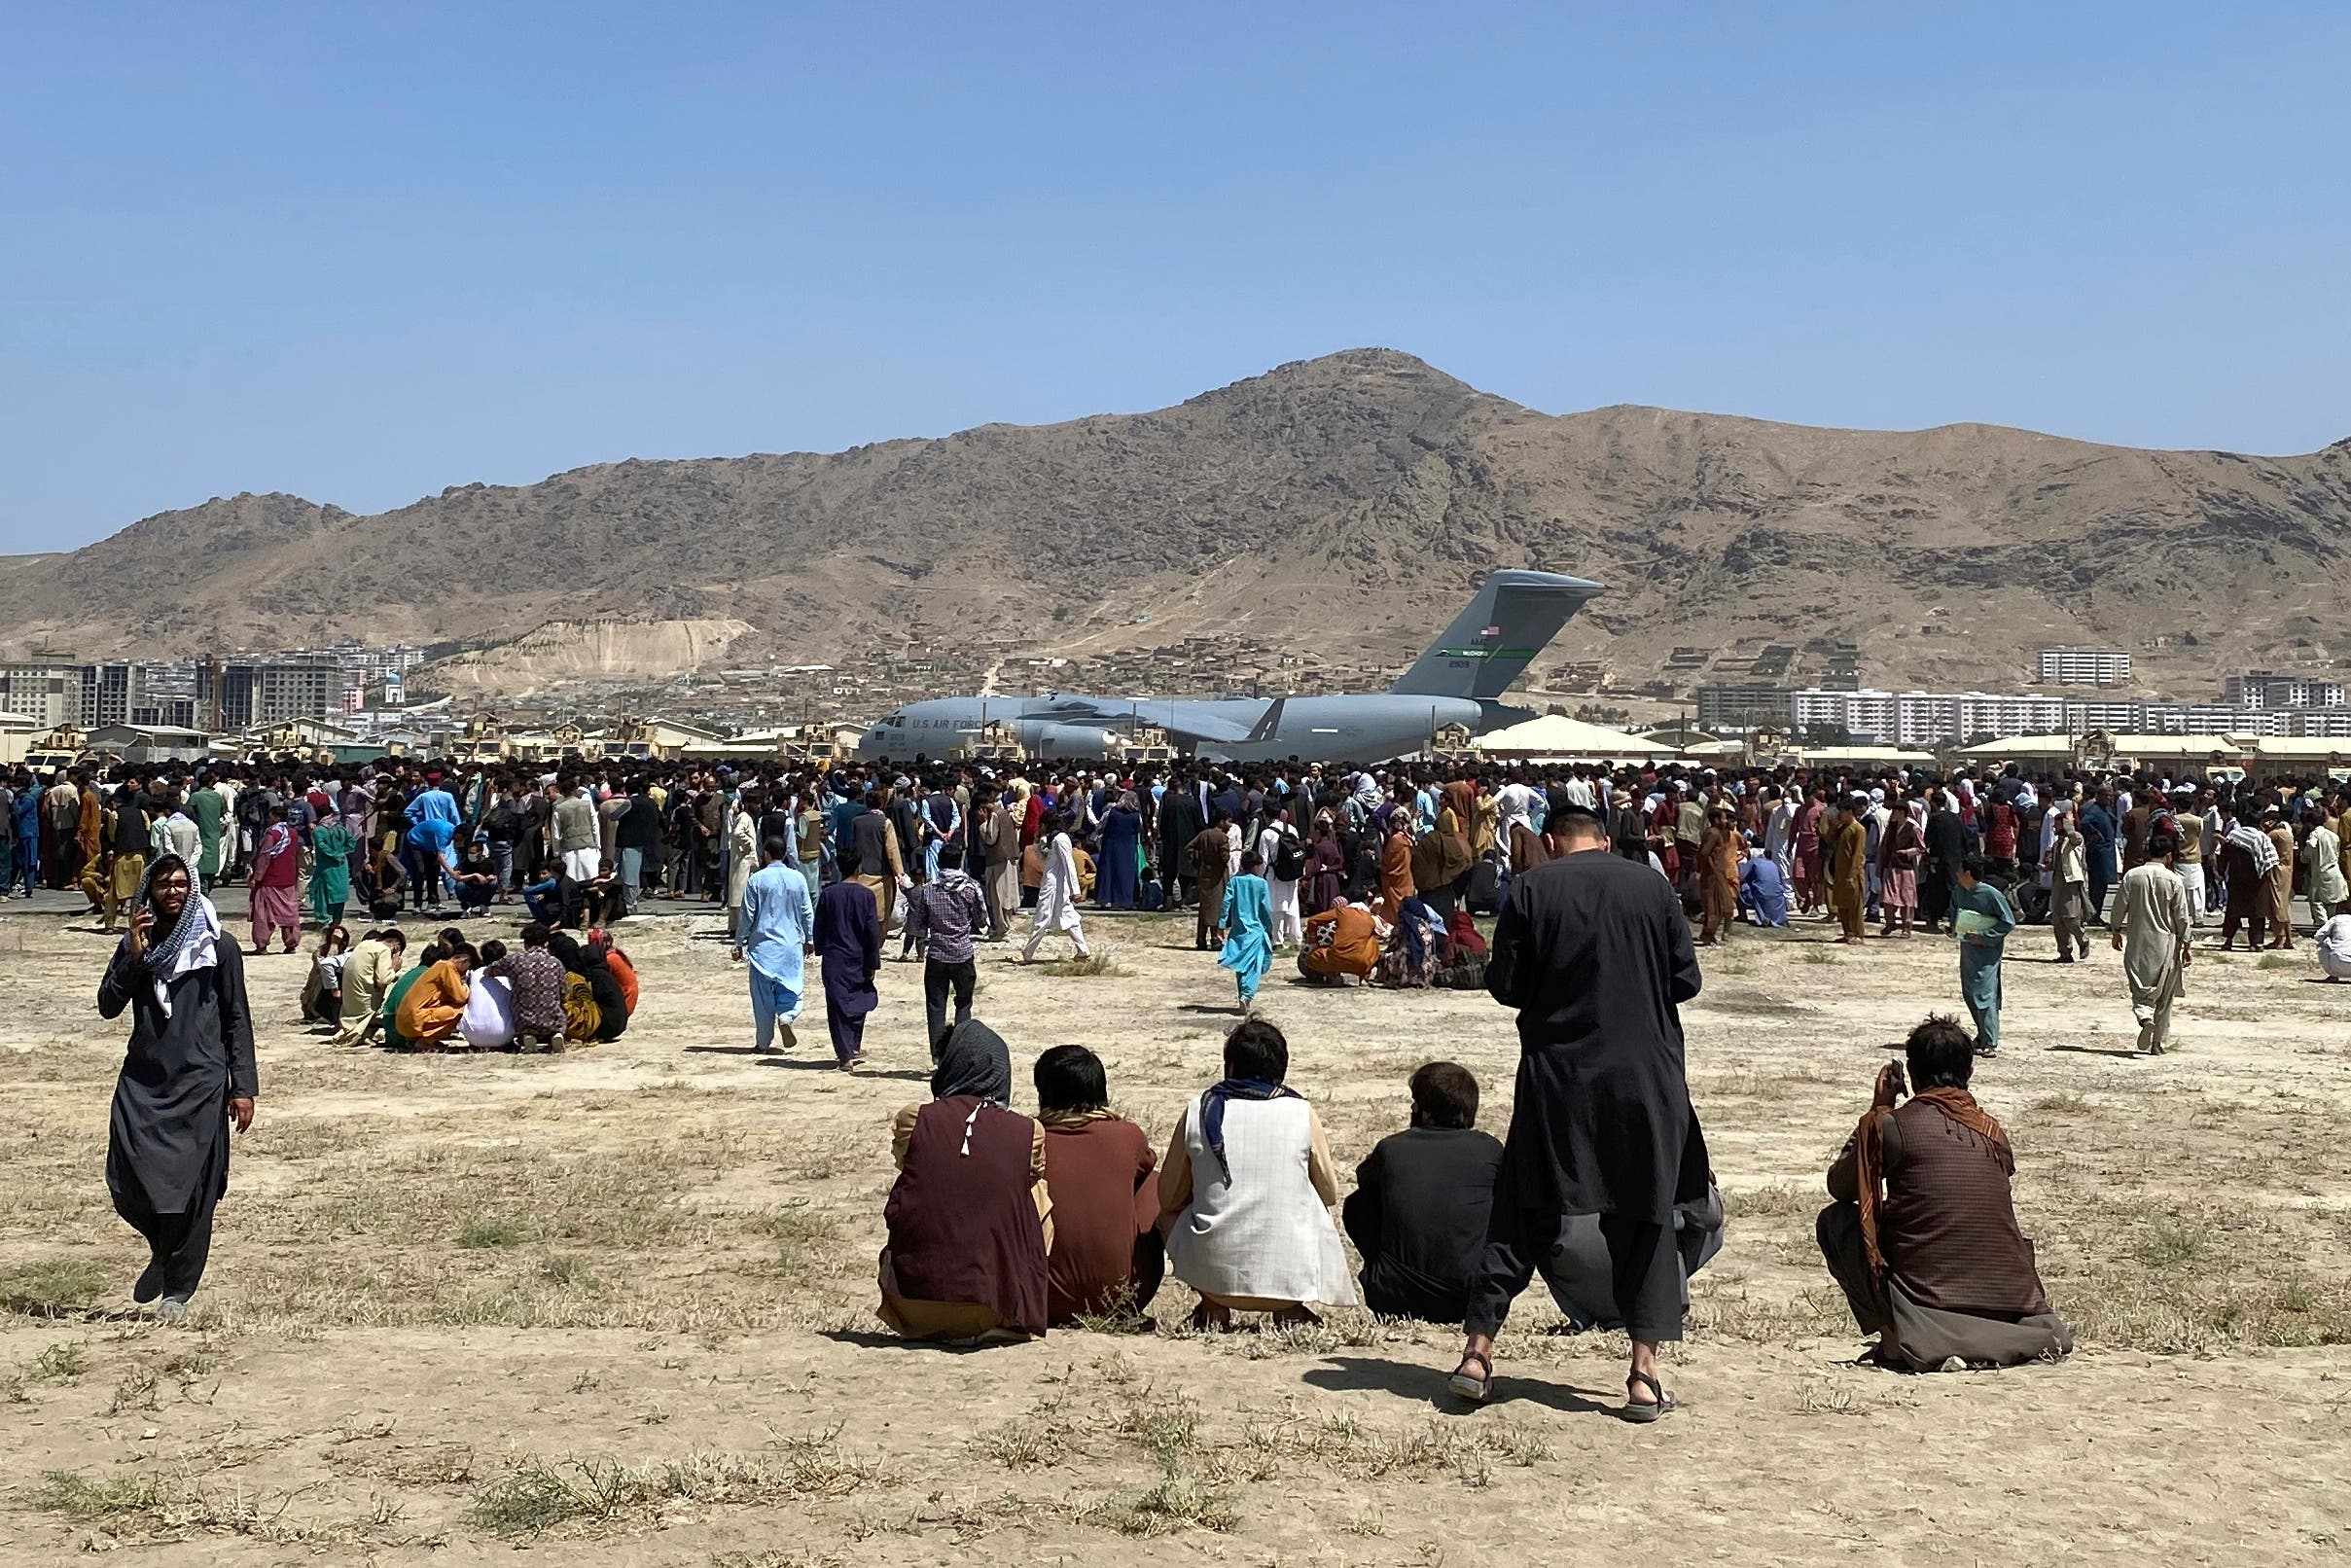 Hundreds of people gather near a US Air Force C-17 transport plane at the perimeter of the international airport in Kabul, Afghanistan, Monday, Aug. 16, 2021. (AFP)